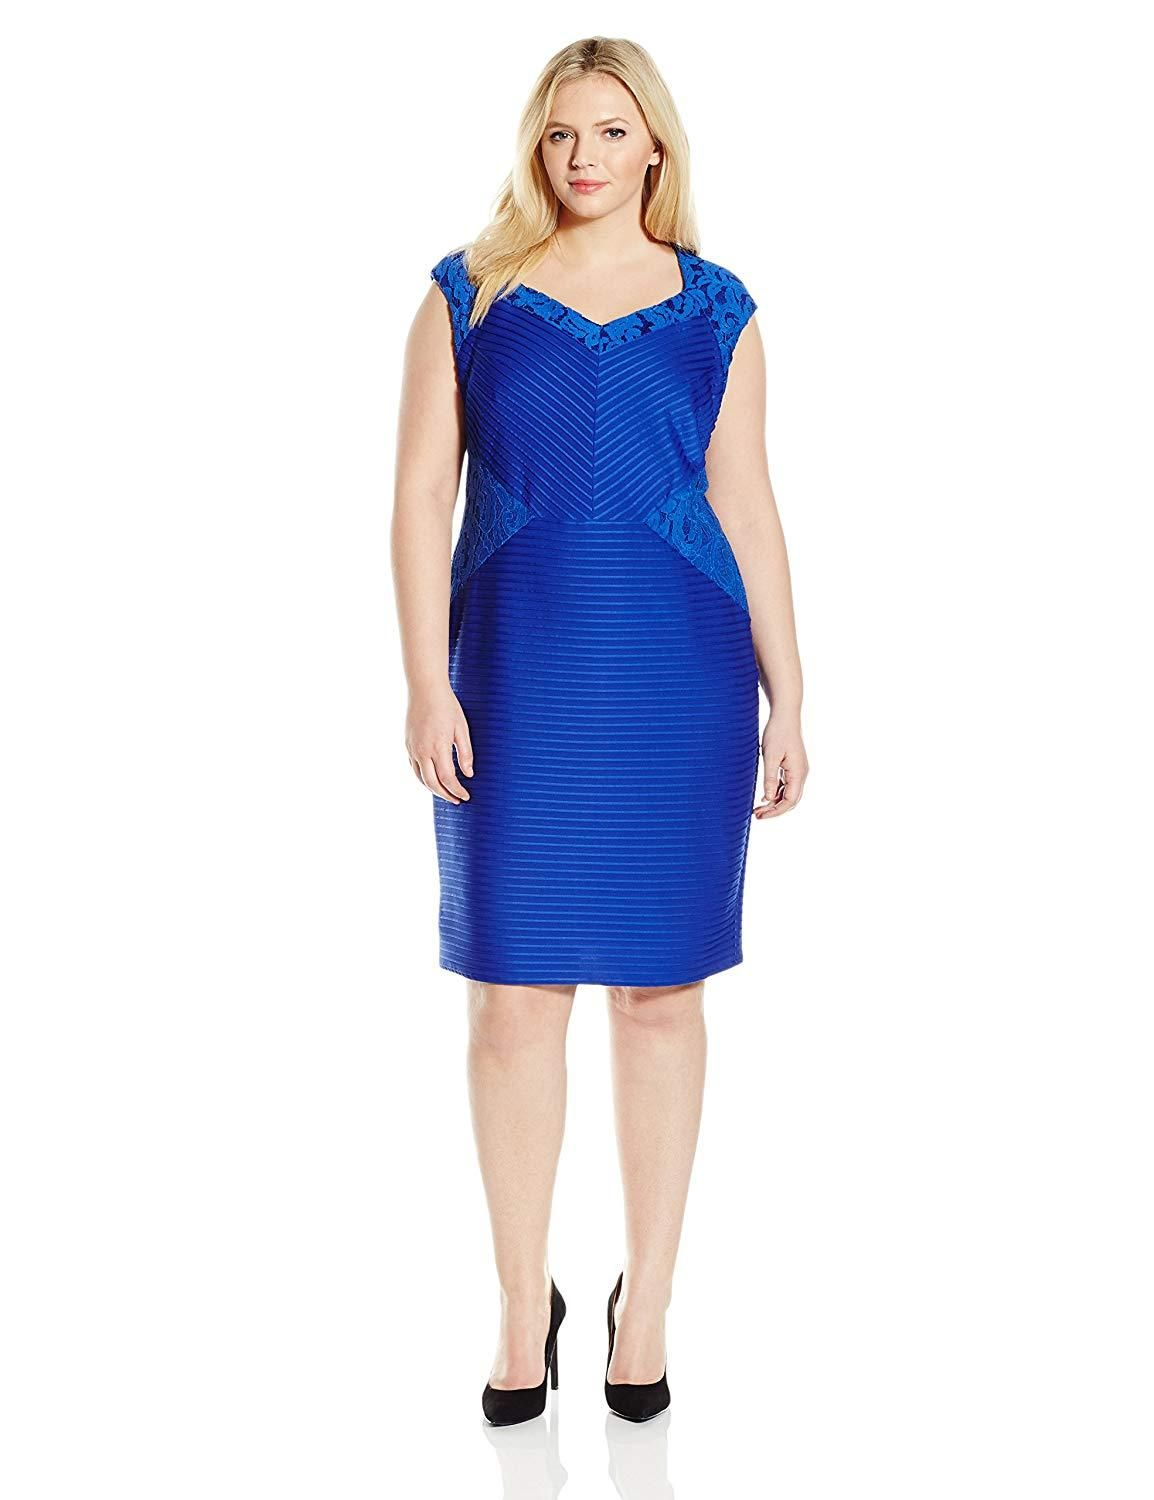 6d9f88f6025a6 London Times Women's Plus Size Cap Sleeve Sheath Dress w. Lace Inset ...